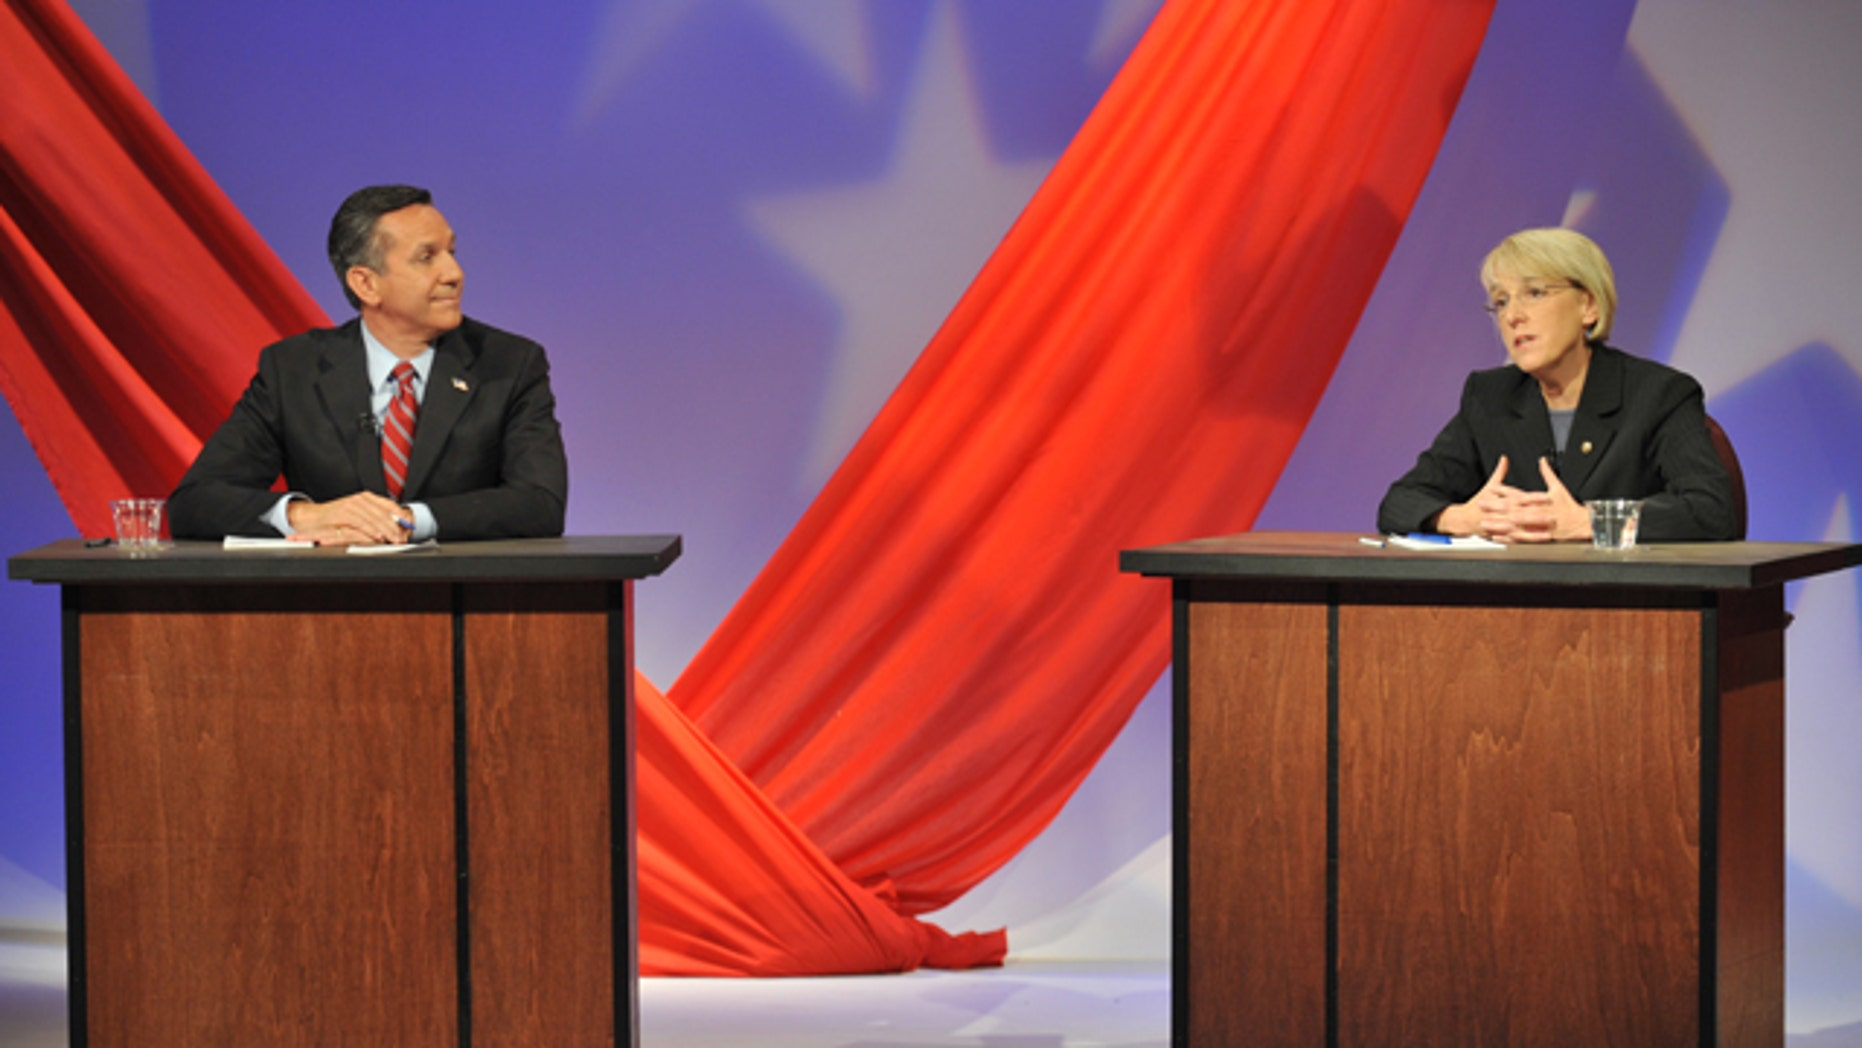 Oct. 14, 2010: Democratic Sen. Patty Murray answers a question during a debate against Republican challenger Dino Rossi at KSPS television station in Spokane, Wash.